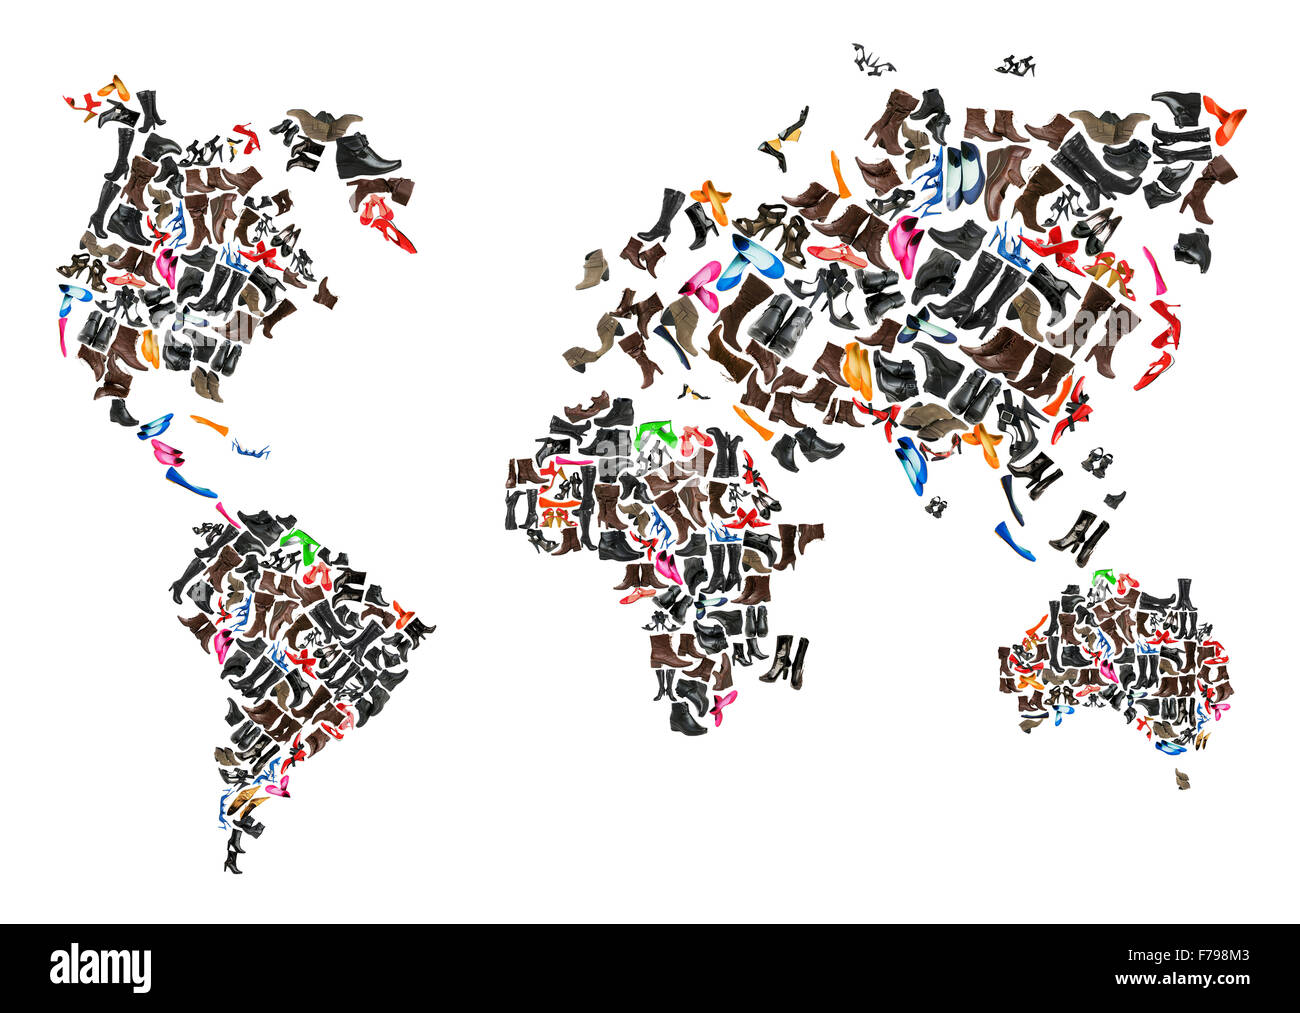 World map made of hundreds of othe shoes - Stock Image